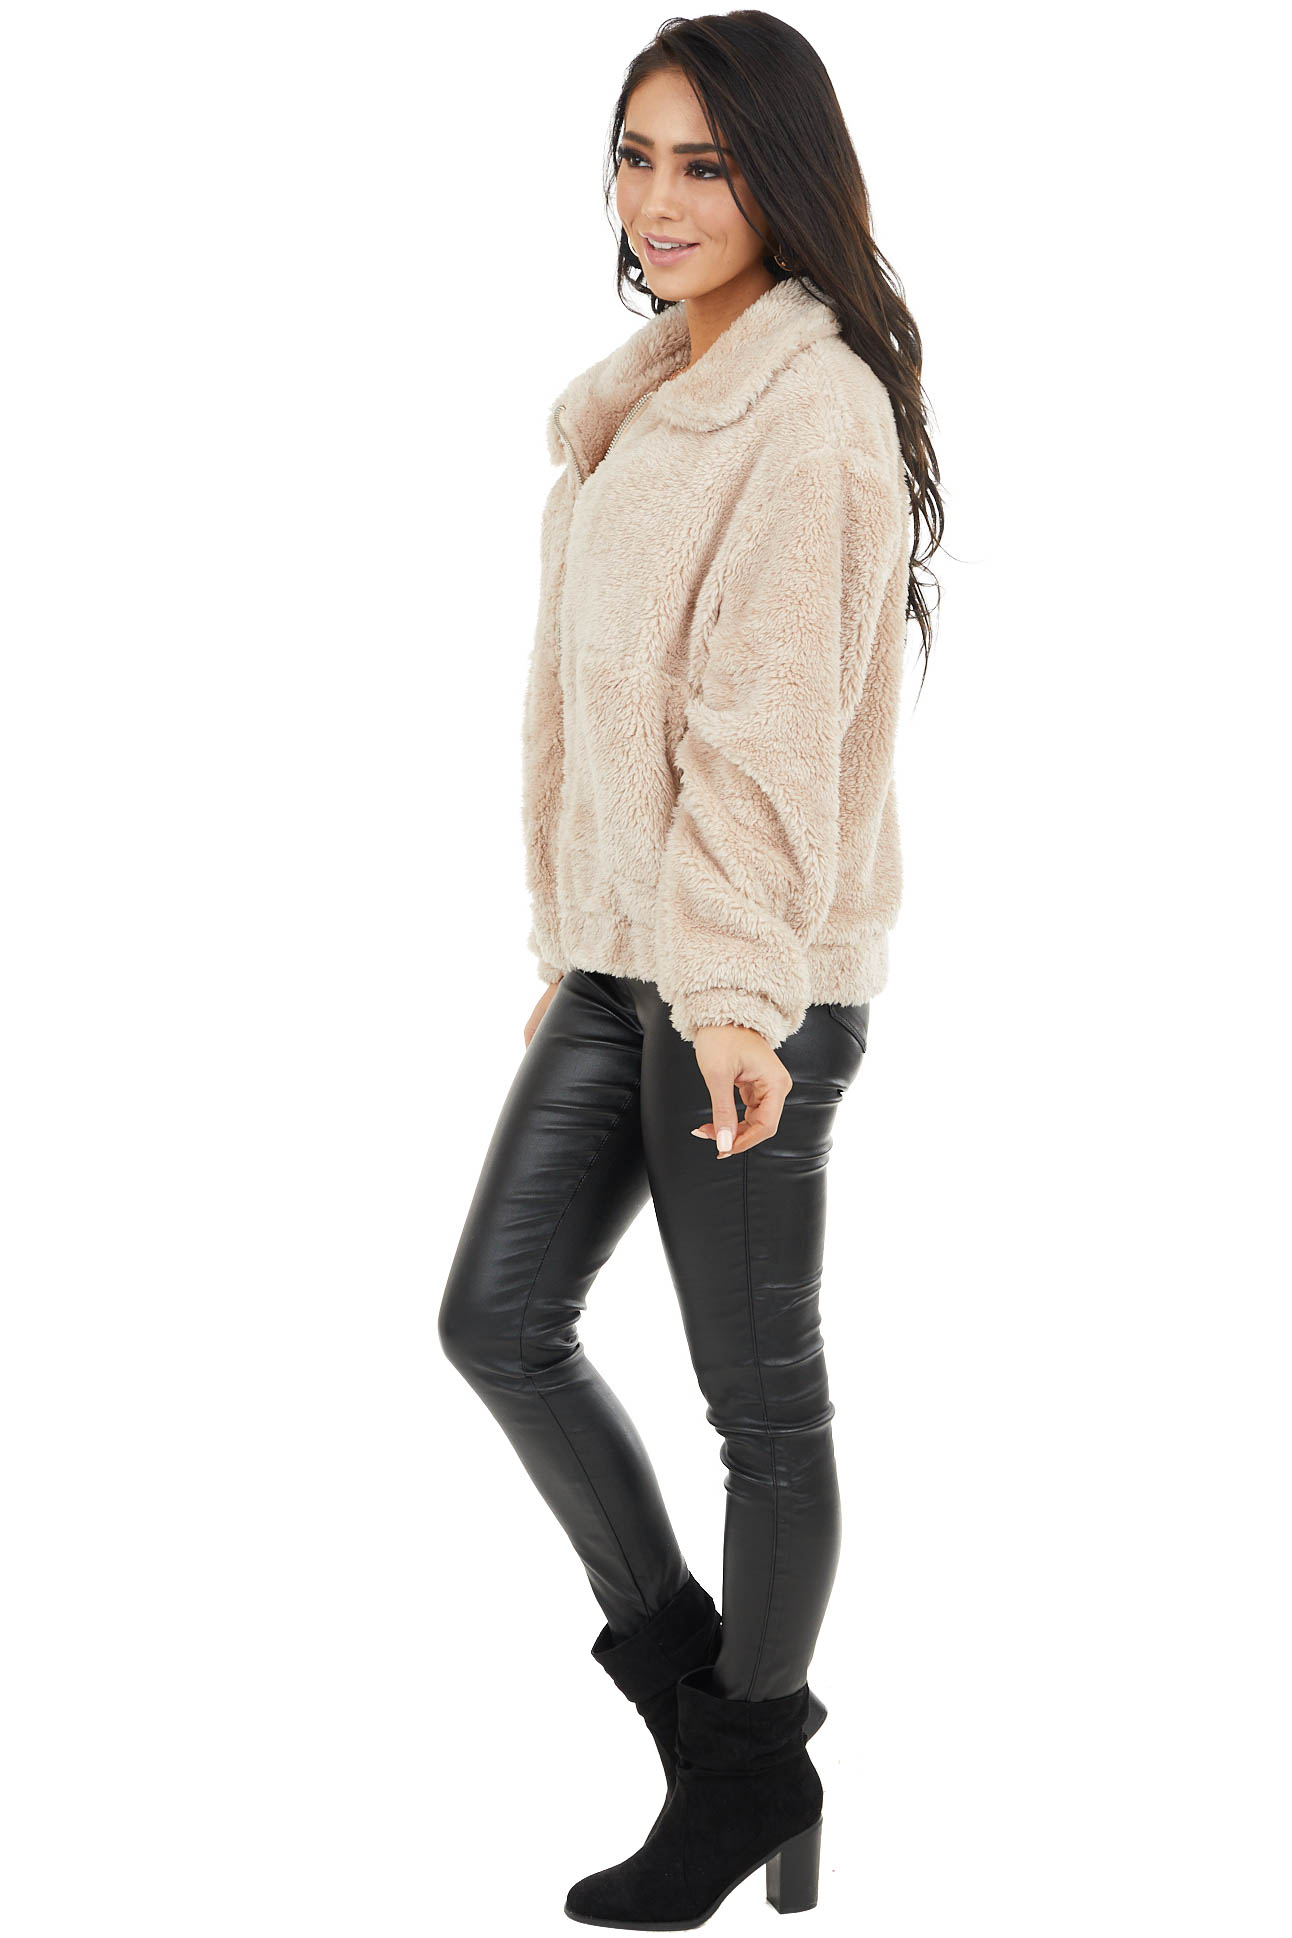 Cream Faux Fur Zip Up Collared Jacket with Pockets